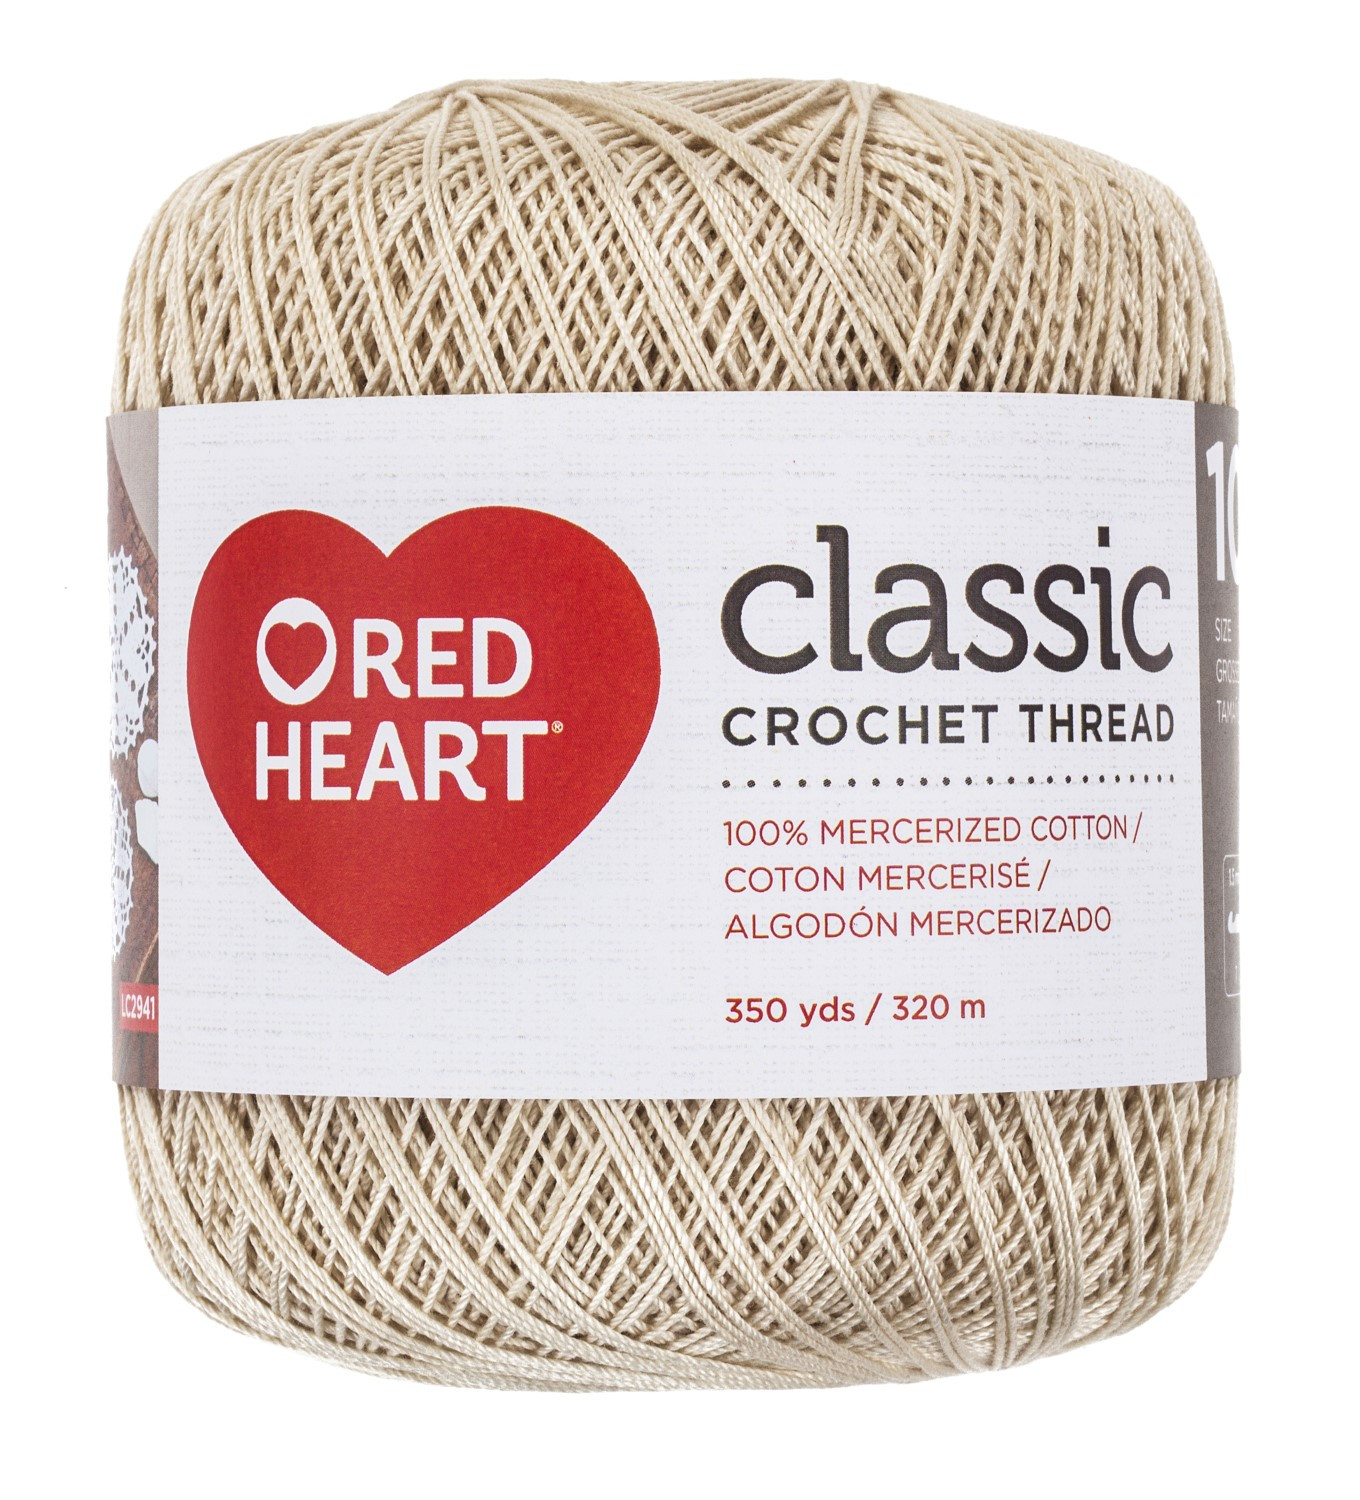 Crochet Thread Size 10 Inspirational Red Heart Classic Crochet Thread Size 10 Natural Of Innovative 40 Pics Crochet Thread Size 10